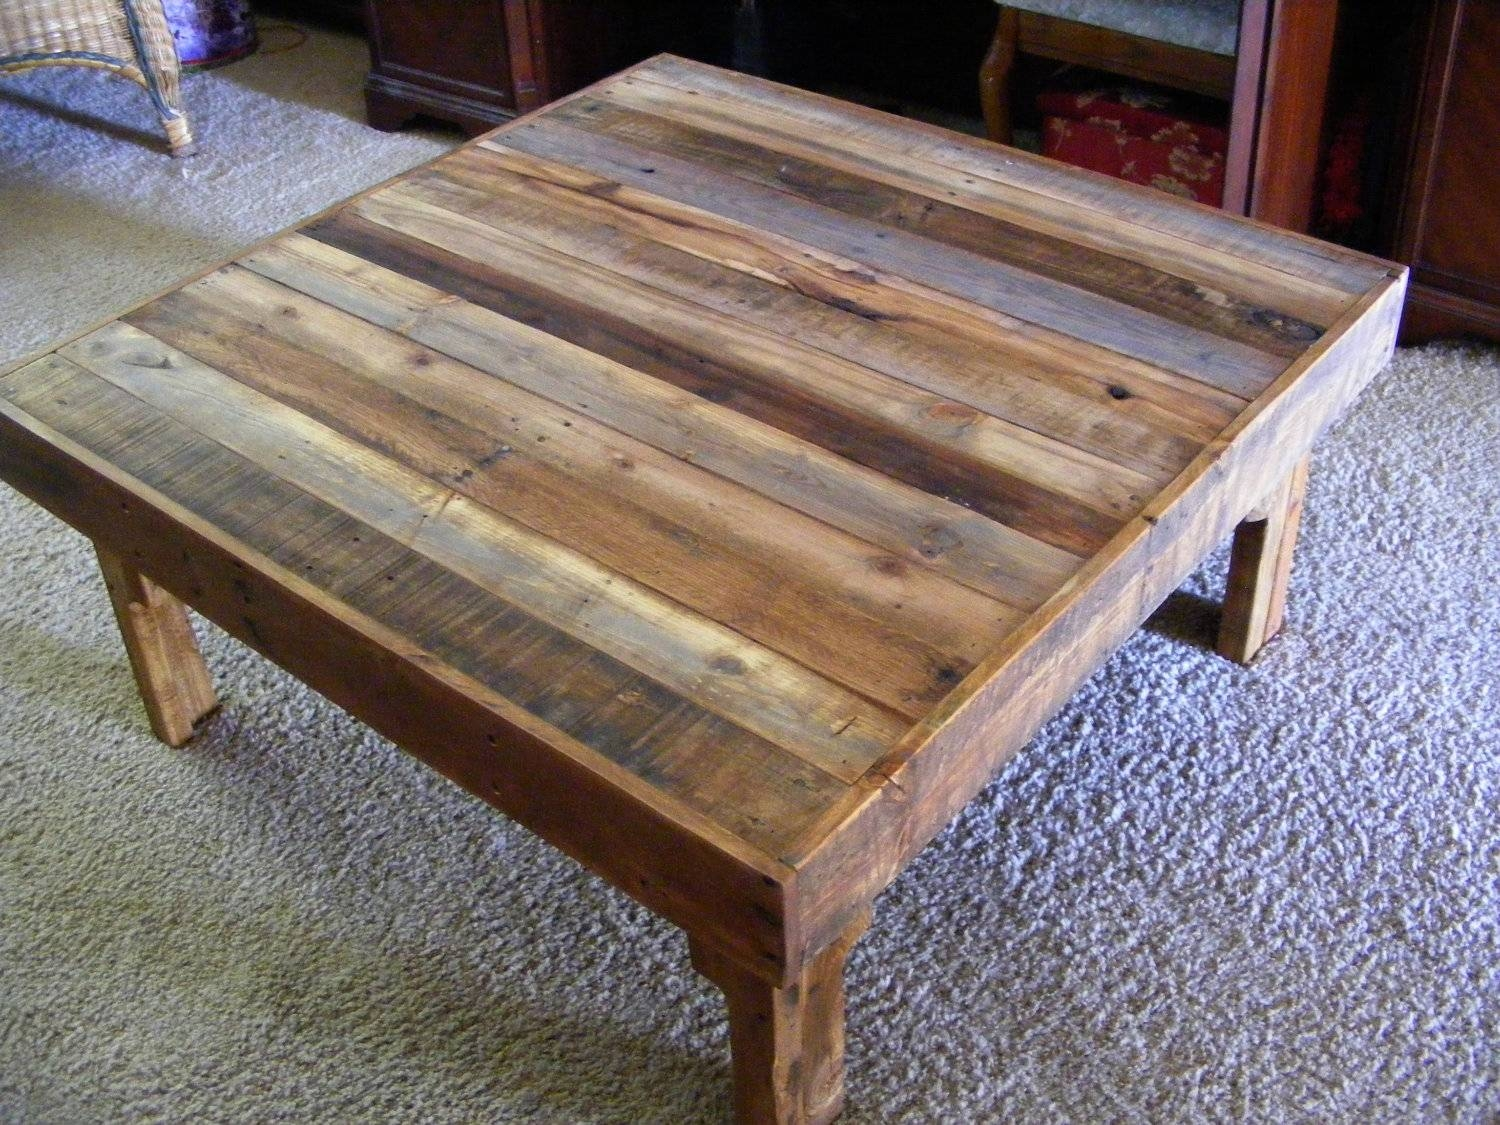 Coffee Table Rustic Outstanding Rustic Wood Coffee Table Diy inside Square Wooden Coffee Table (Image 3 of 15)